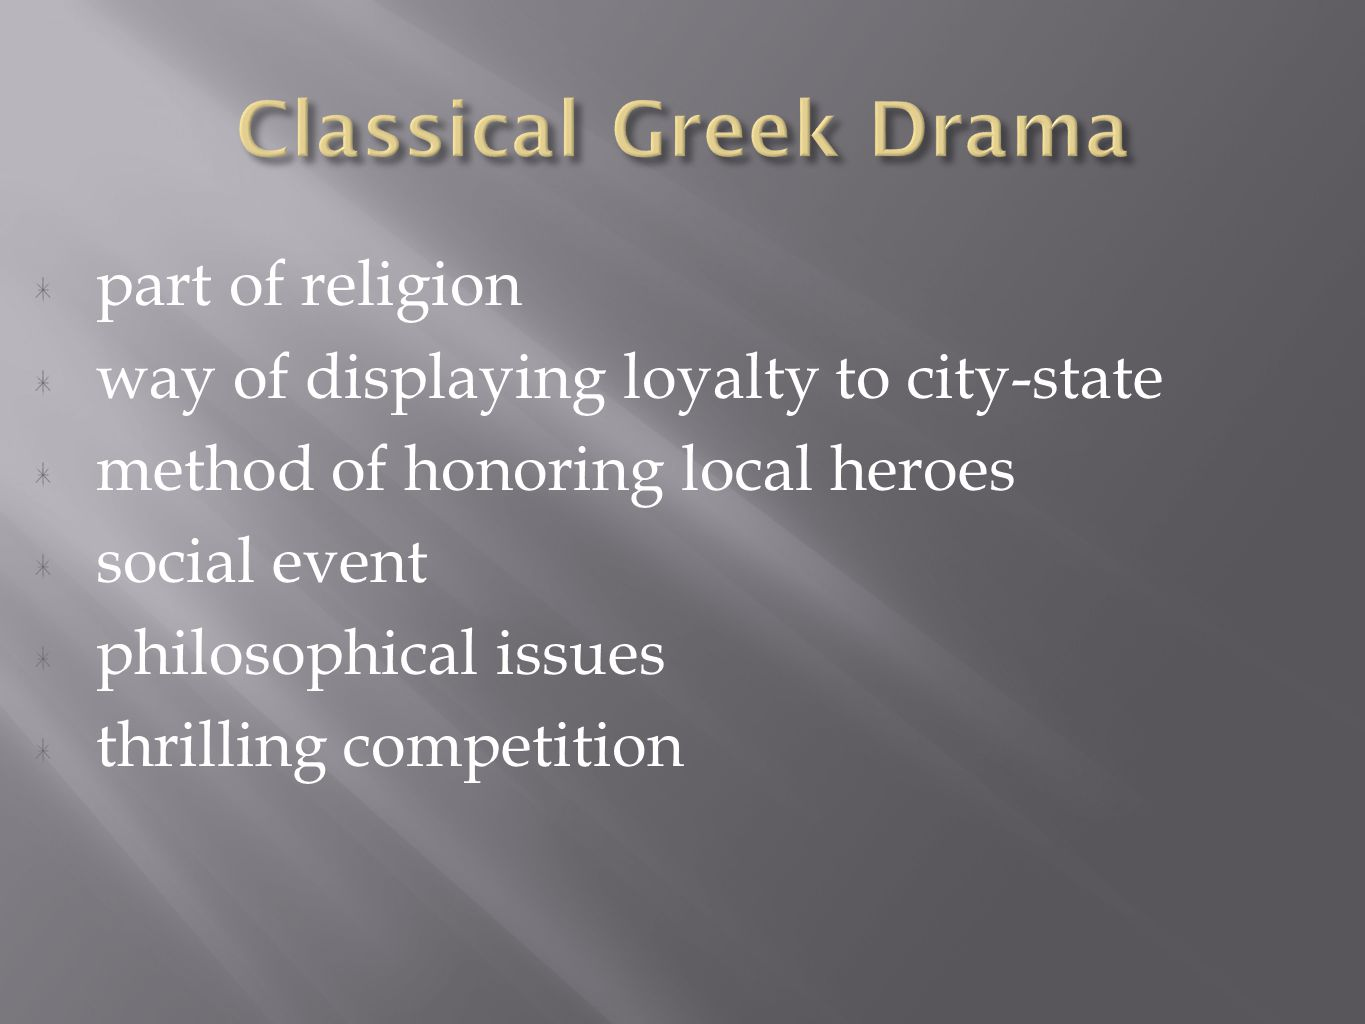 part of religion way of displaying loyalty to city-state method of honoring local heroes social event philosophical issues thrilling competition